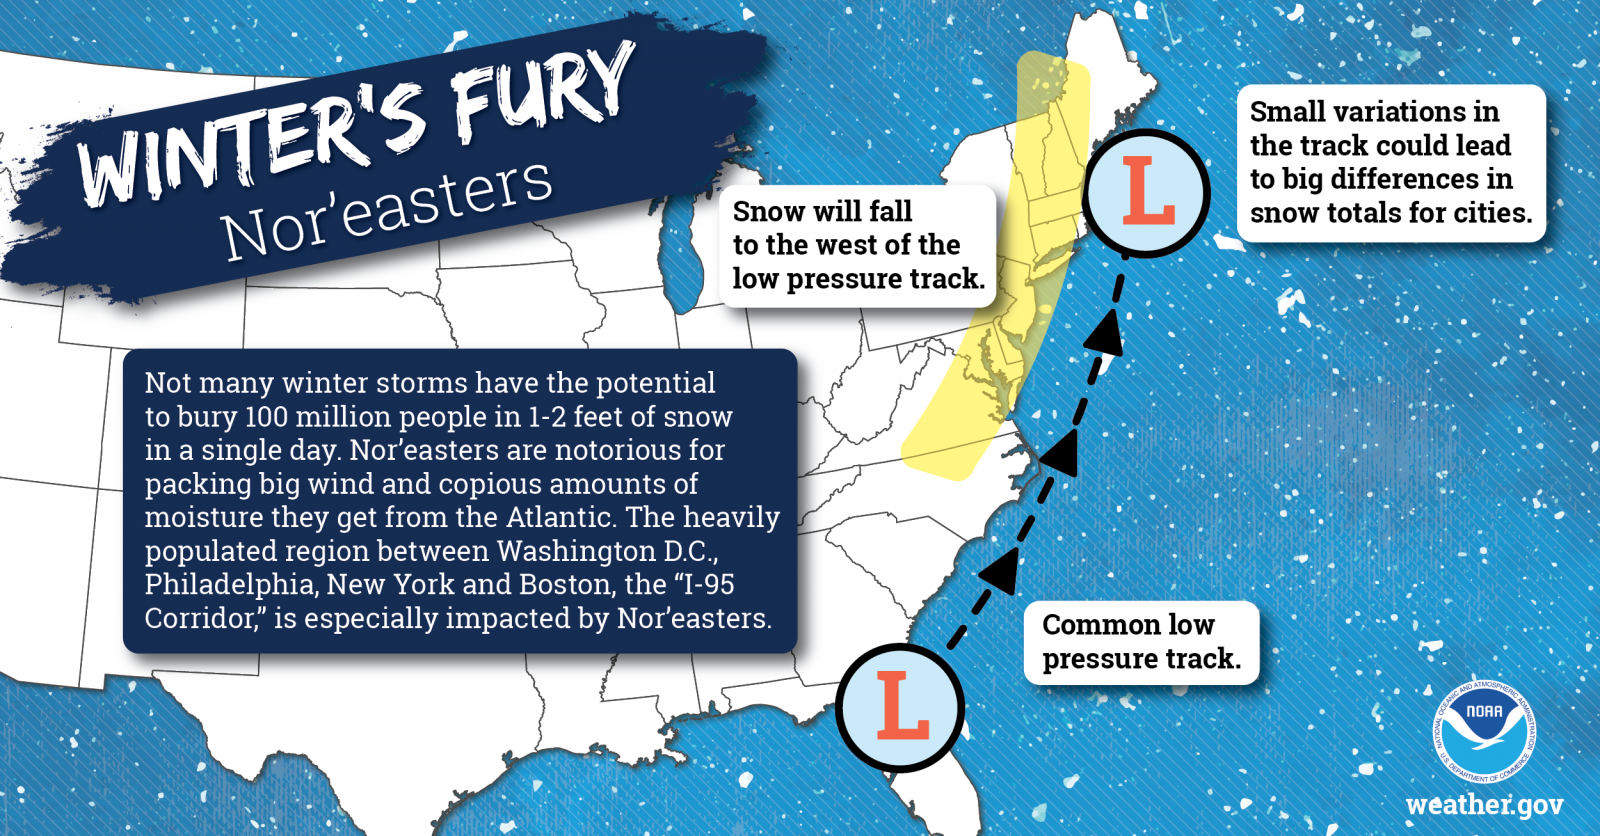 Winter's Fury - Nor'easters: Not many winter storms have the potential to bury 100 million people in 1-2 feet of snow in a single day. Nor'easters are notorious for packing big wind and copious amounts of moisture they get from the Atlantic. The heavily populated region between Washington D.C., Philadelphia, New York and Boston, the 'I-95 Corrdior', is epsecially impacted by Nor'easters.